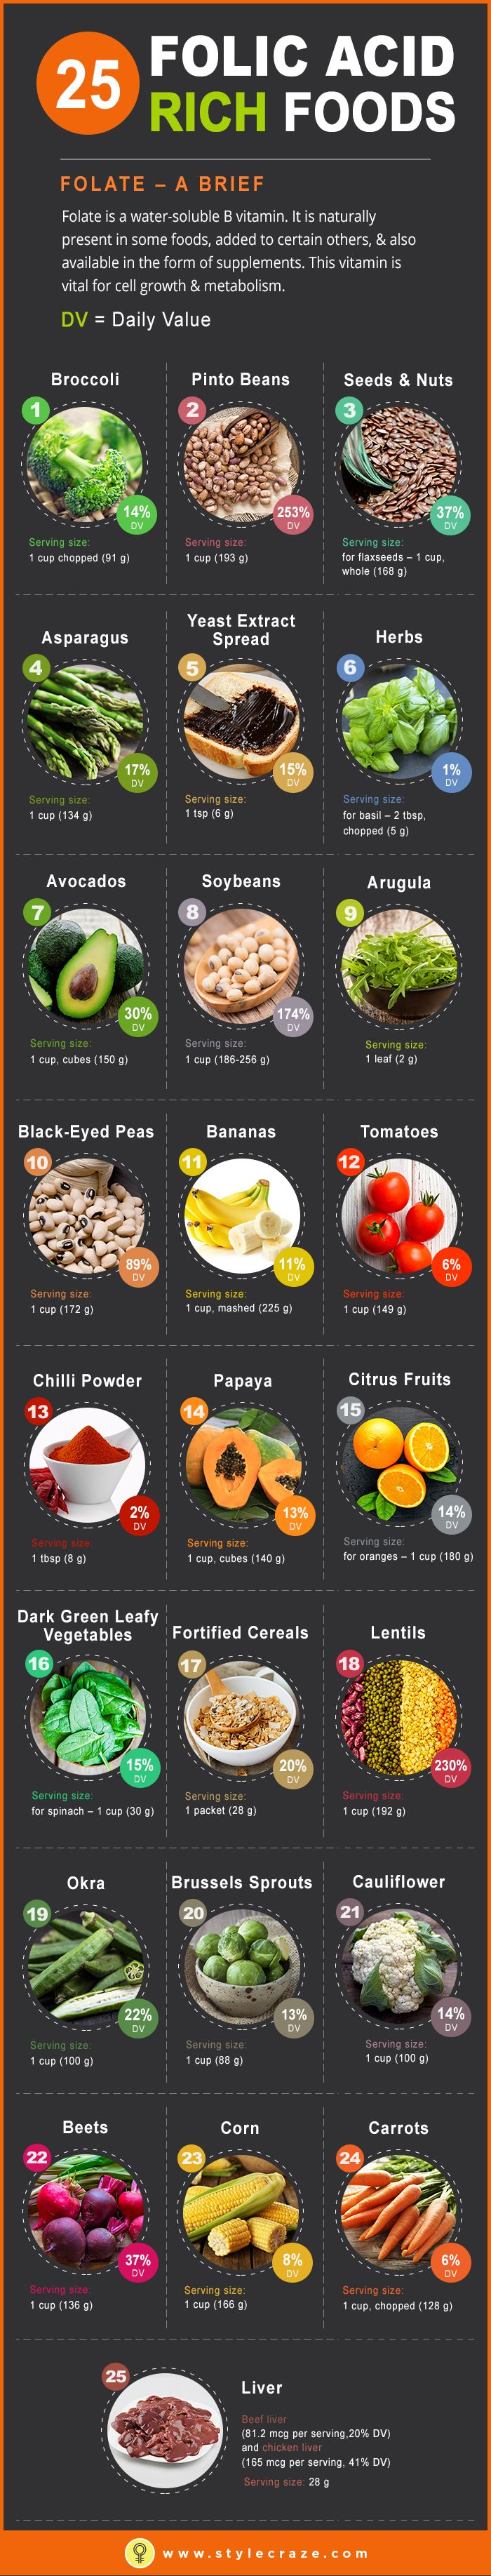 Best 25+ High acid foods ideas on Pinterest | List of ...